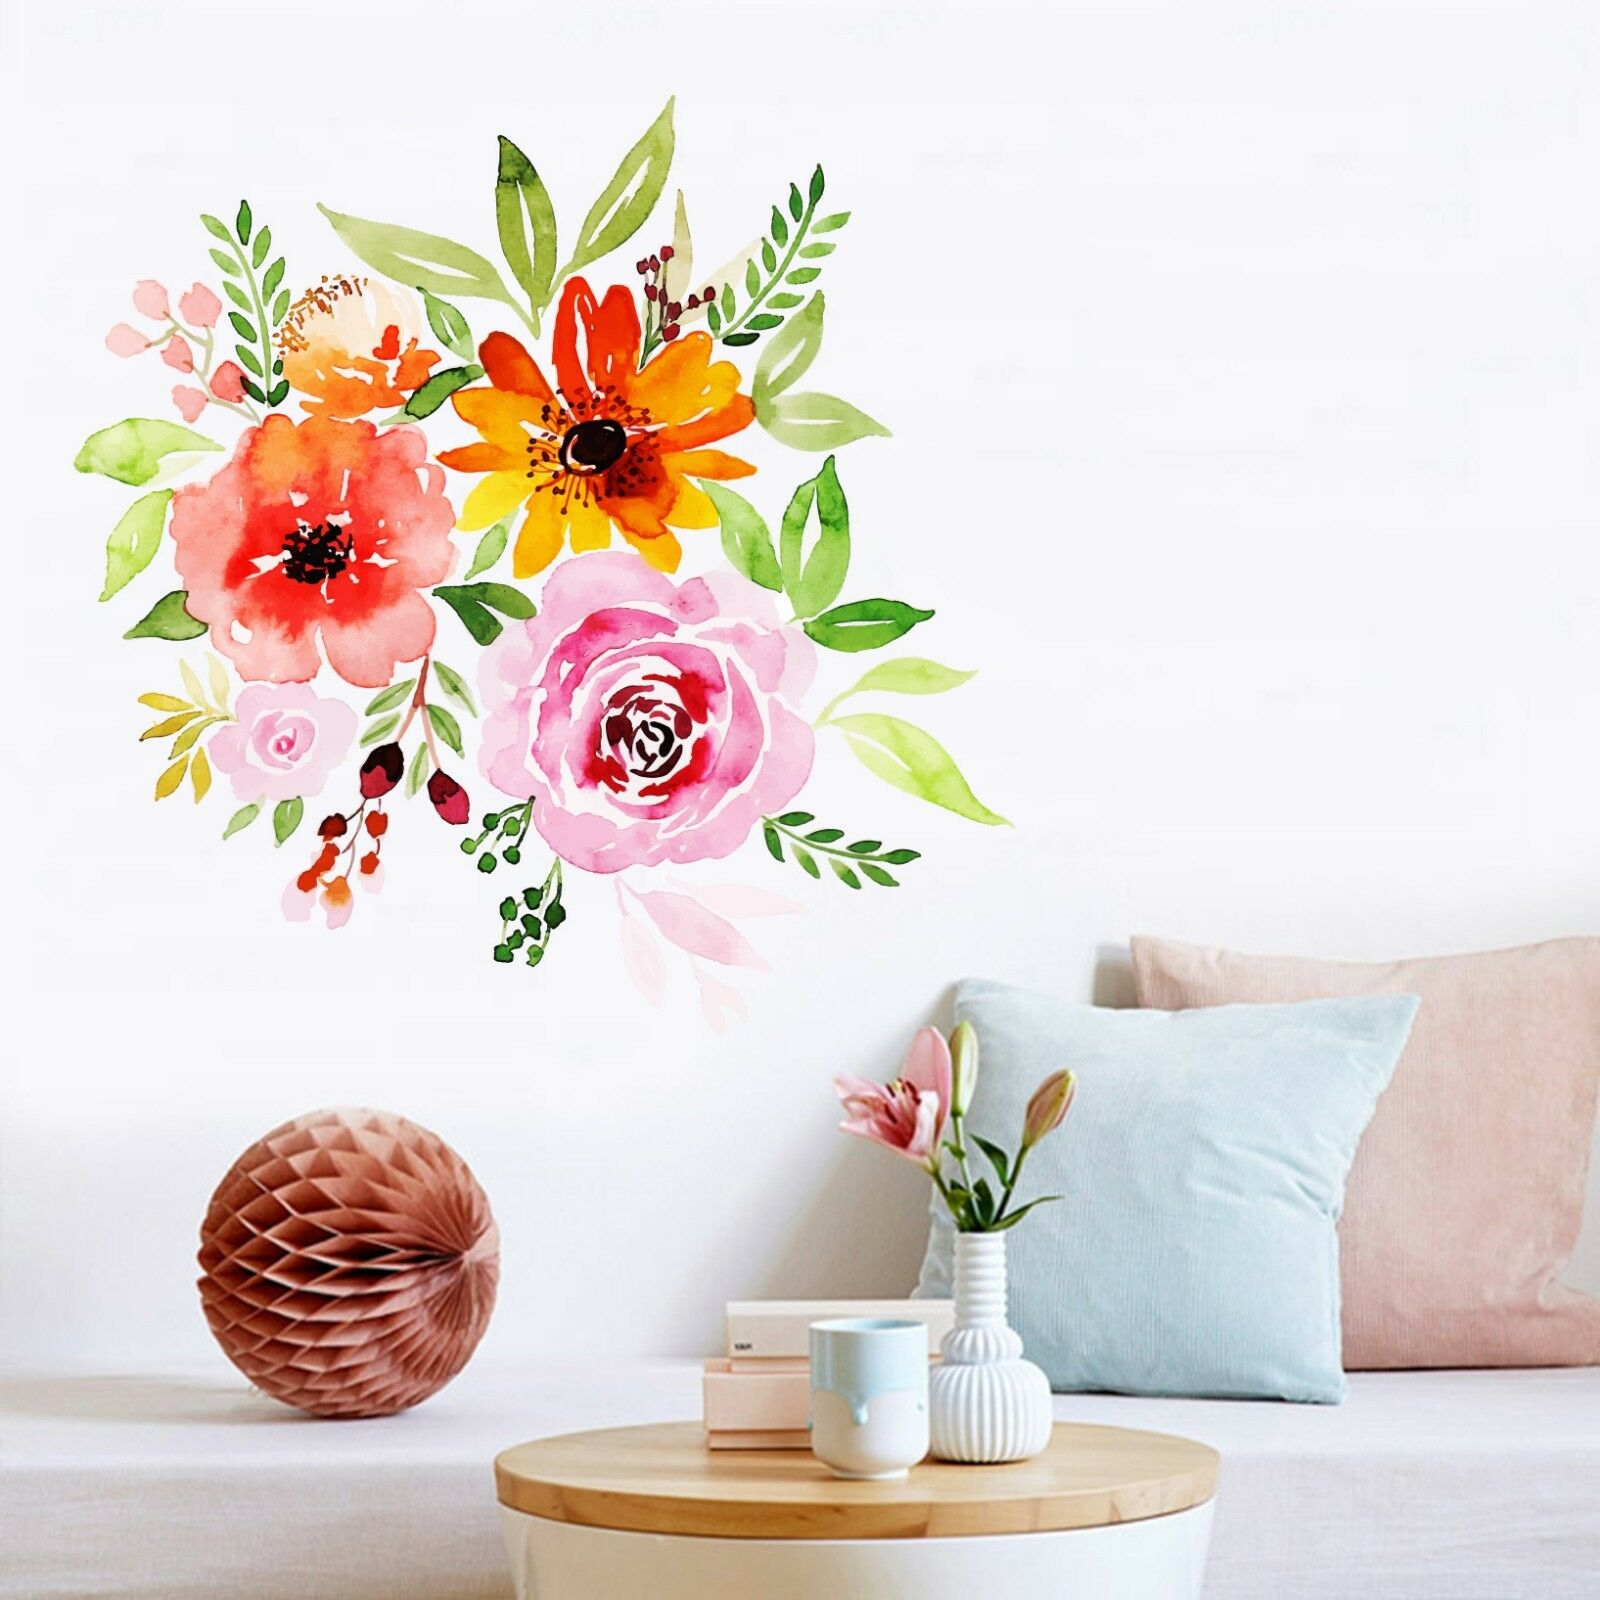 3D Bright Flowers 040 Wallpaper Murals Floor Wall Print Wall Sticker AU Summer